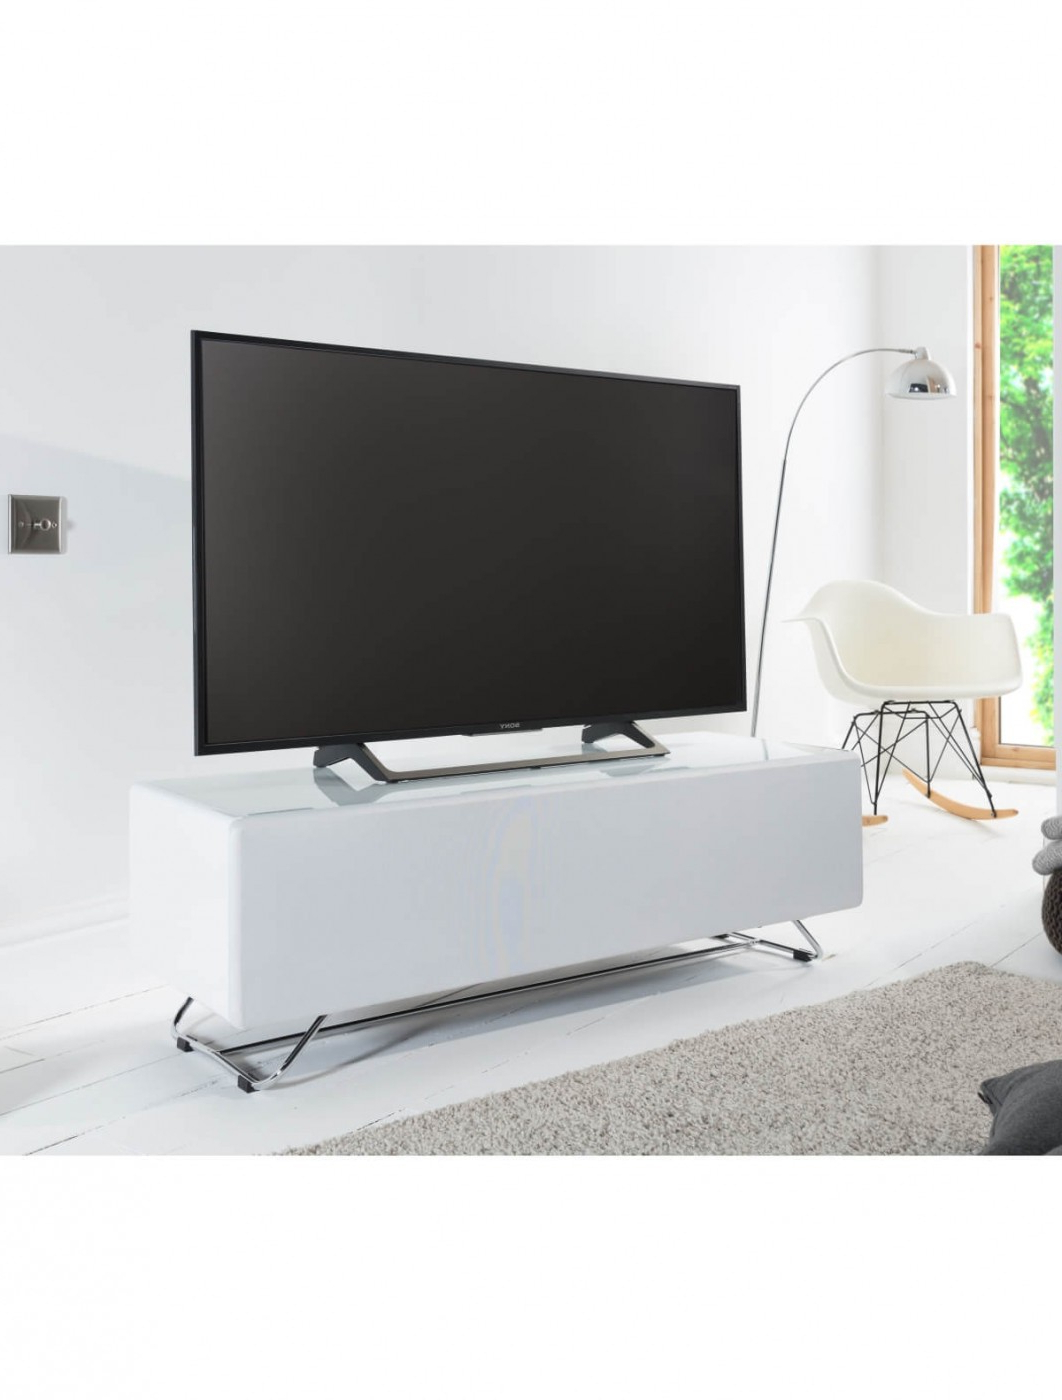 Tv Stand White Chromium Concept 1200mm Cro2 1200cpt Wh Within Well Known Chromium Tv Stands (View 12 of 25)